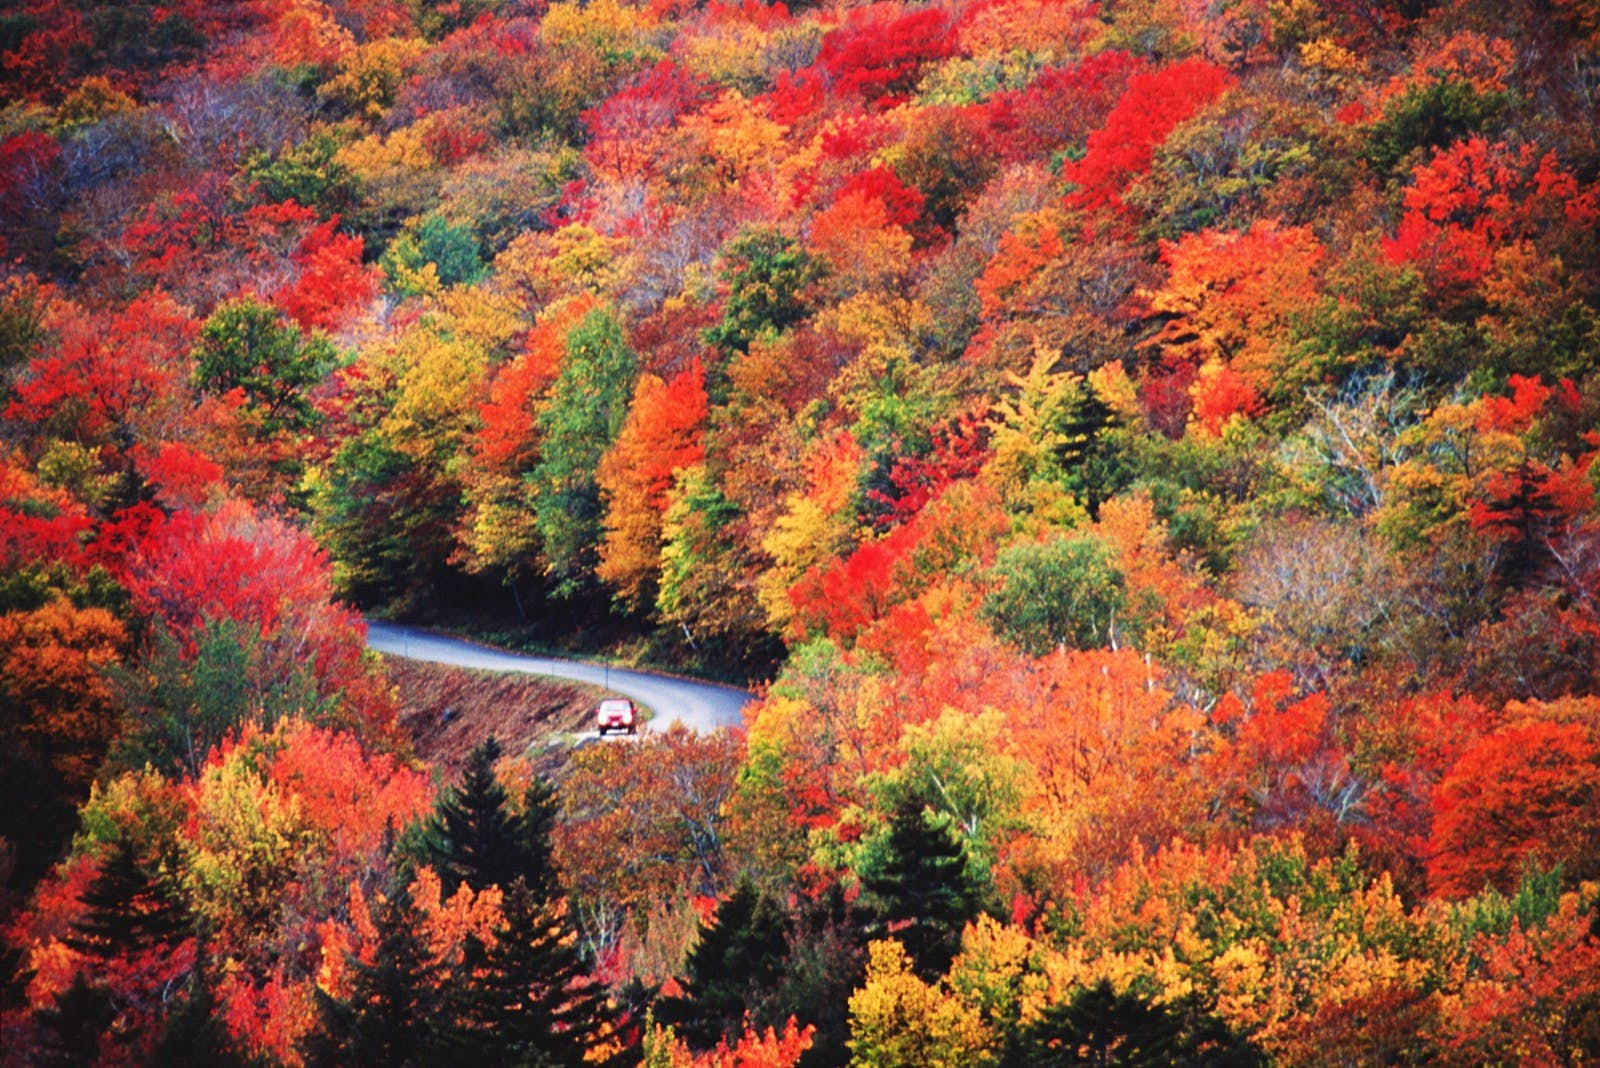 A car drives on a windy road that you can barely see because of the dense orange, red, yellow and green foliage while listening to audiobooks for a US road trip through small-town America.